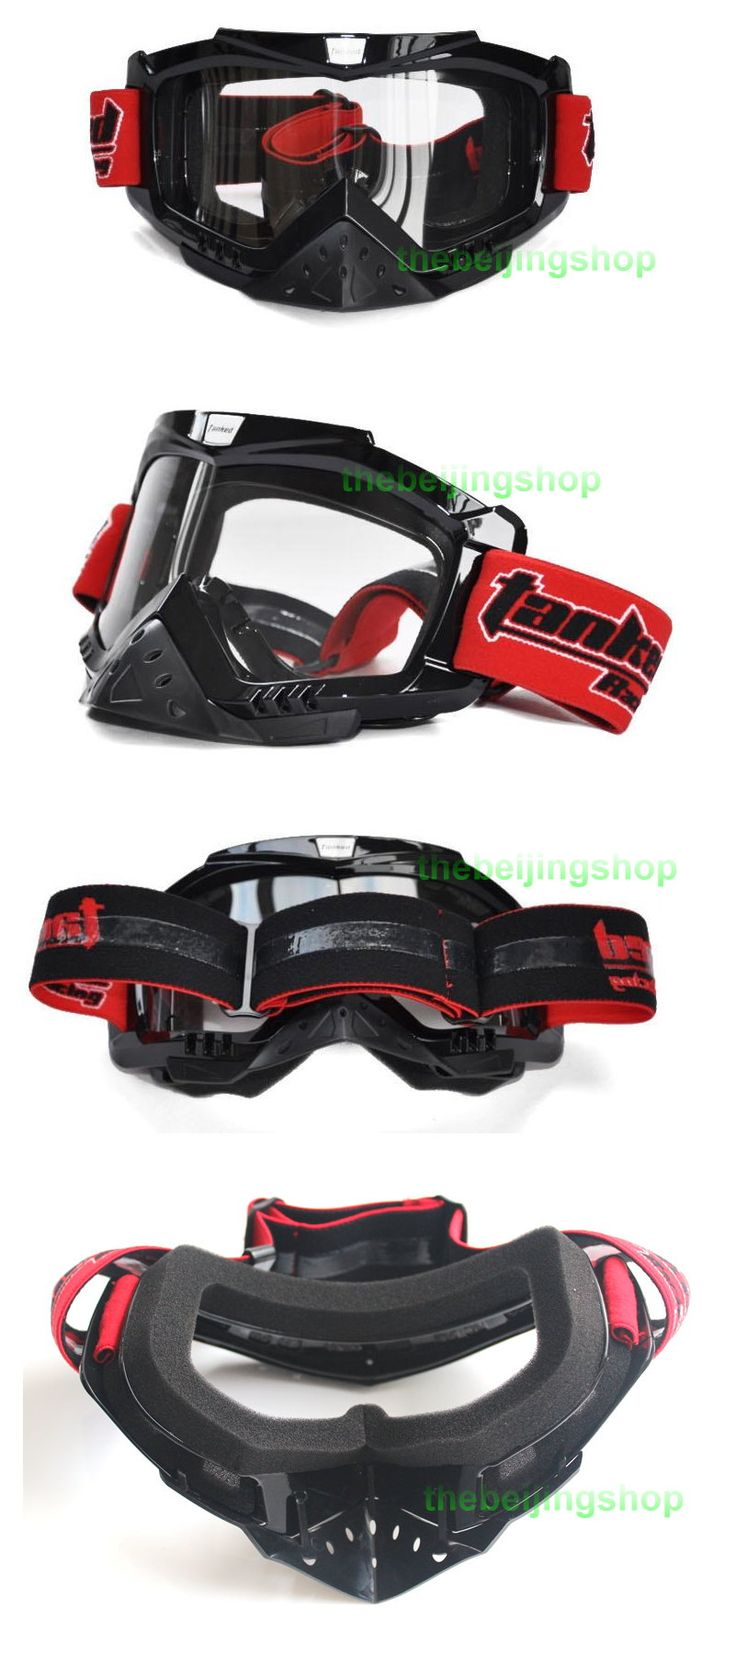 ATV Dirt Bike Motorcycle Goggles with nose cover (Black) Vintage Motorcycle Goggle for Harley Rider T10 [TG750] - $21.59 : TheBeijingshop.com, Fixie Bike Fixed Gear Bicycle Parts, Motorcycle Helmet & Apparel, Modify Cars Parts